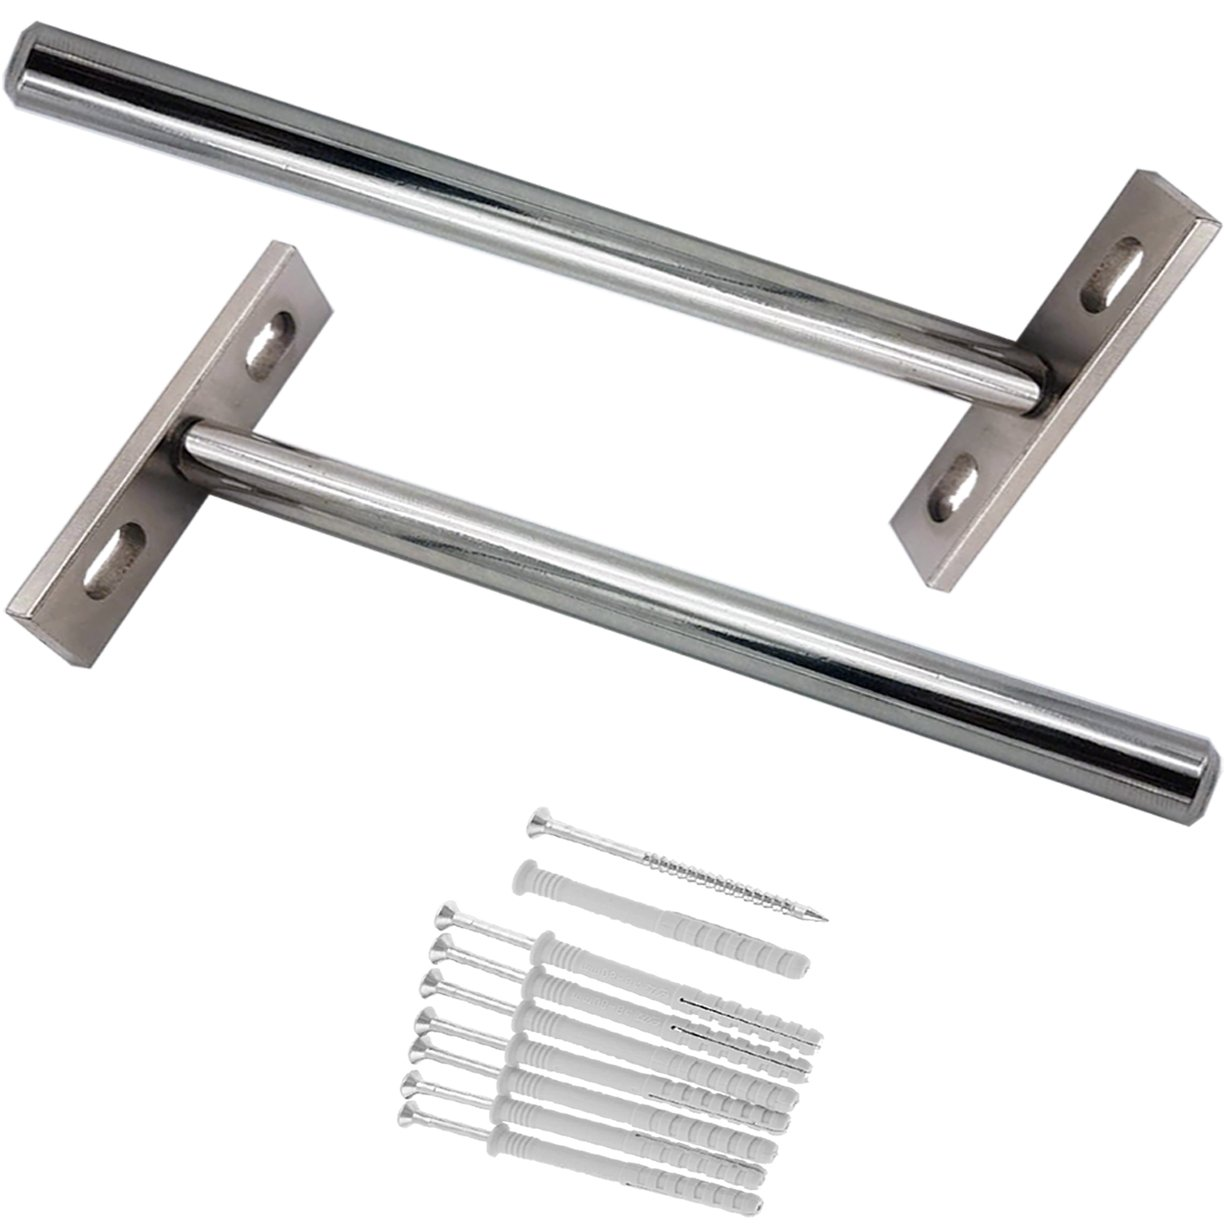 solid steel floating shelf brackets with screws and concealed support nickel plated flush fit blind invisible hanging fully concealable hidden shelves supports strong piece